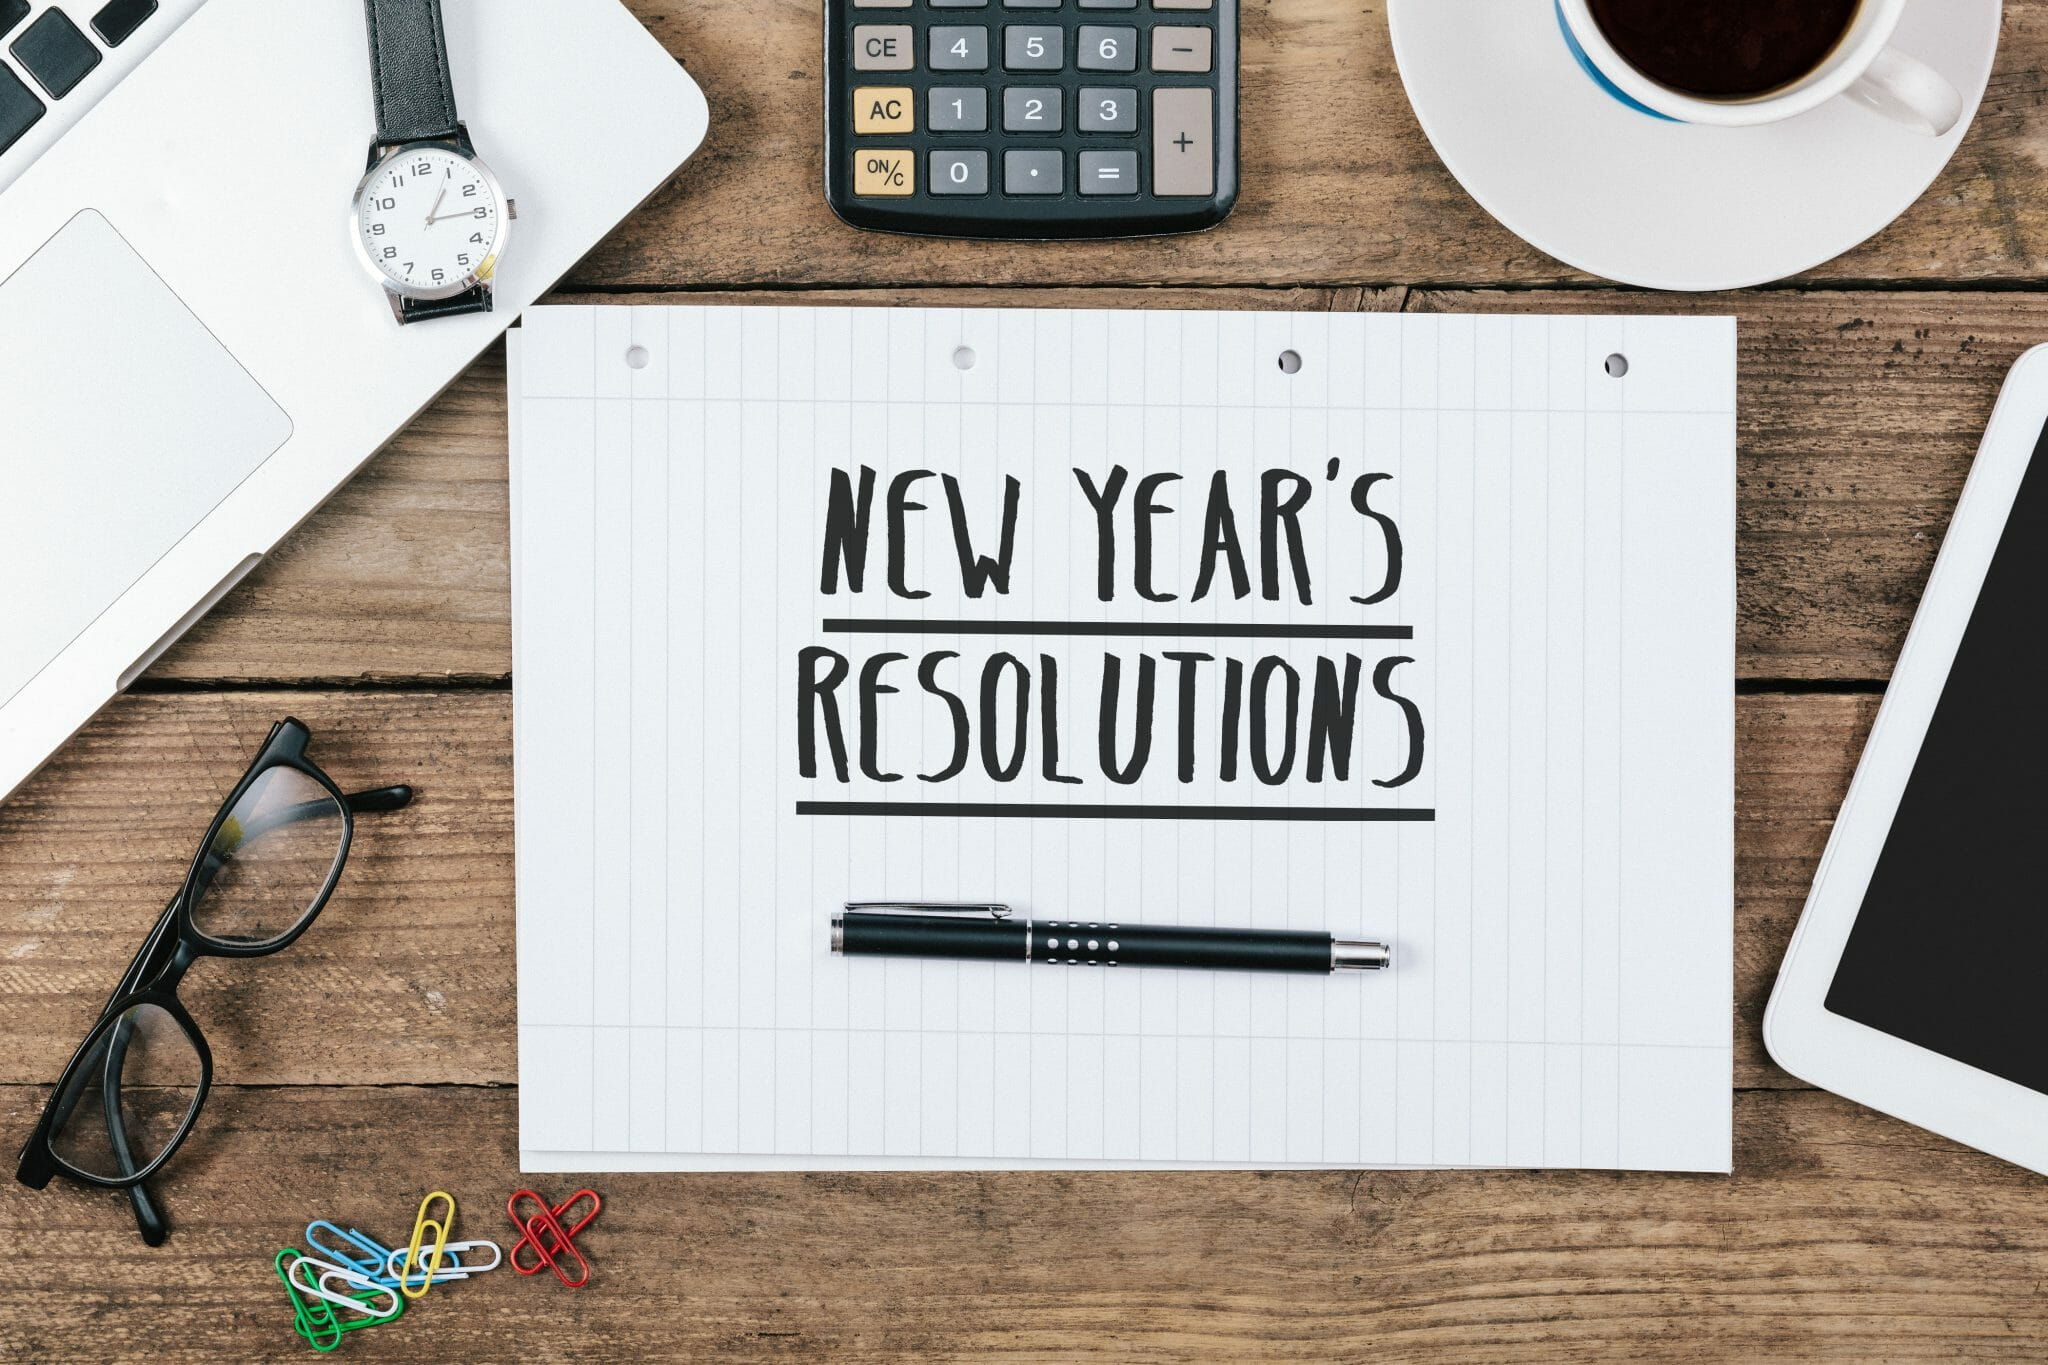 5 New Year's resolutions for brands on social